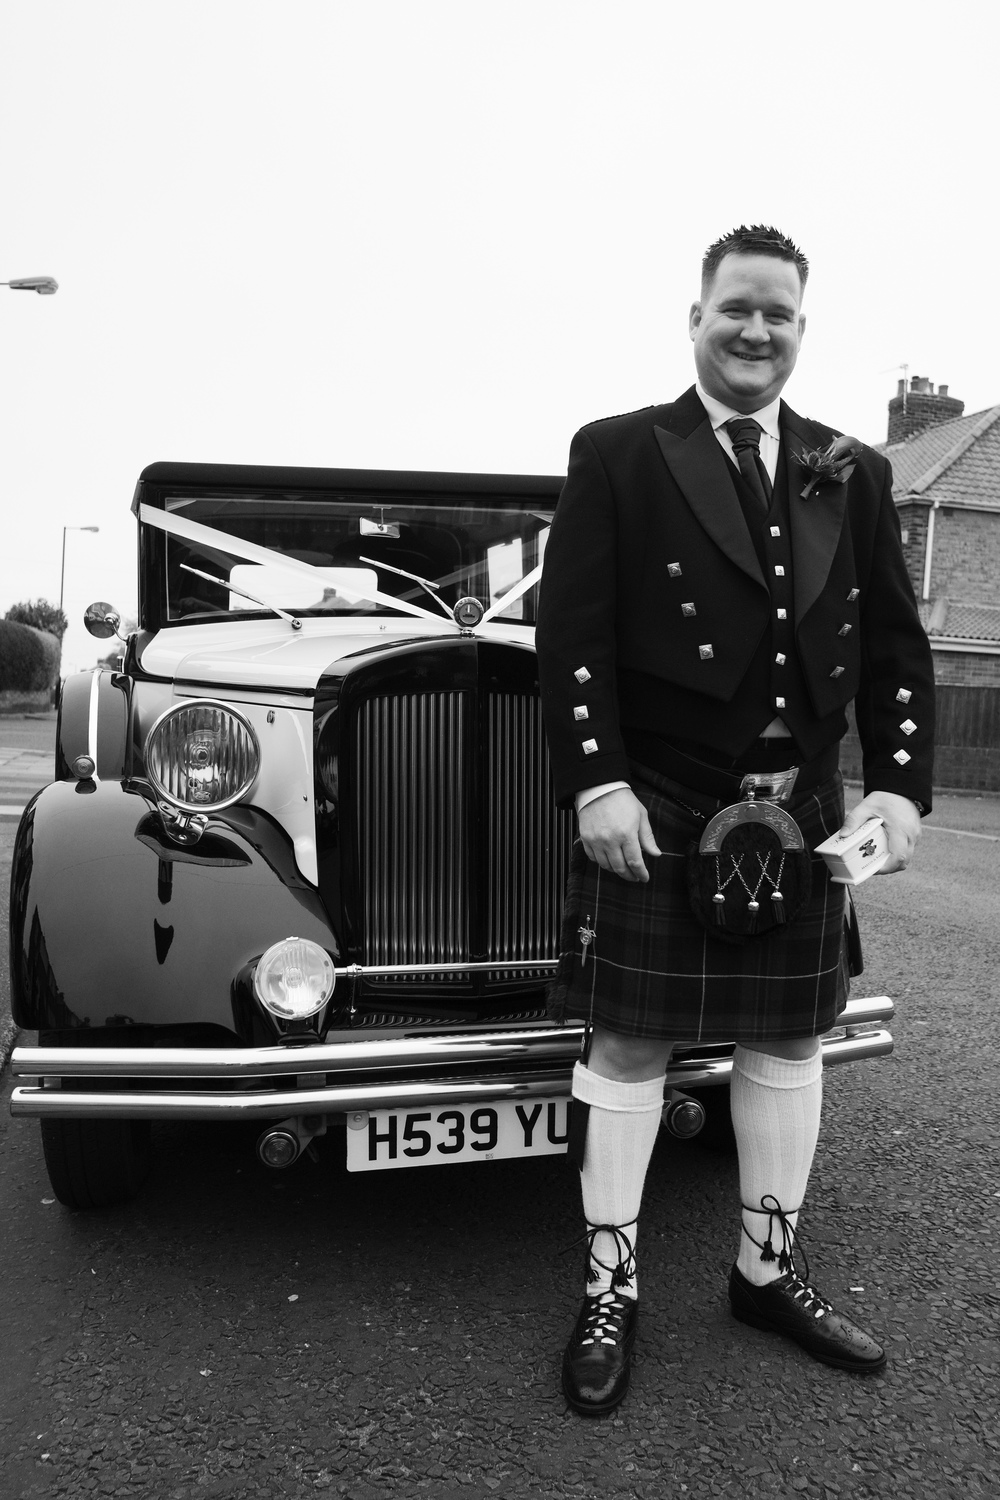 Newcastle Wedding Photographer // Groom posing in front of wedding car